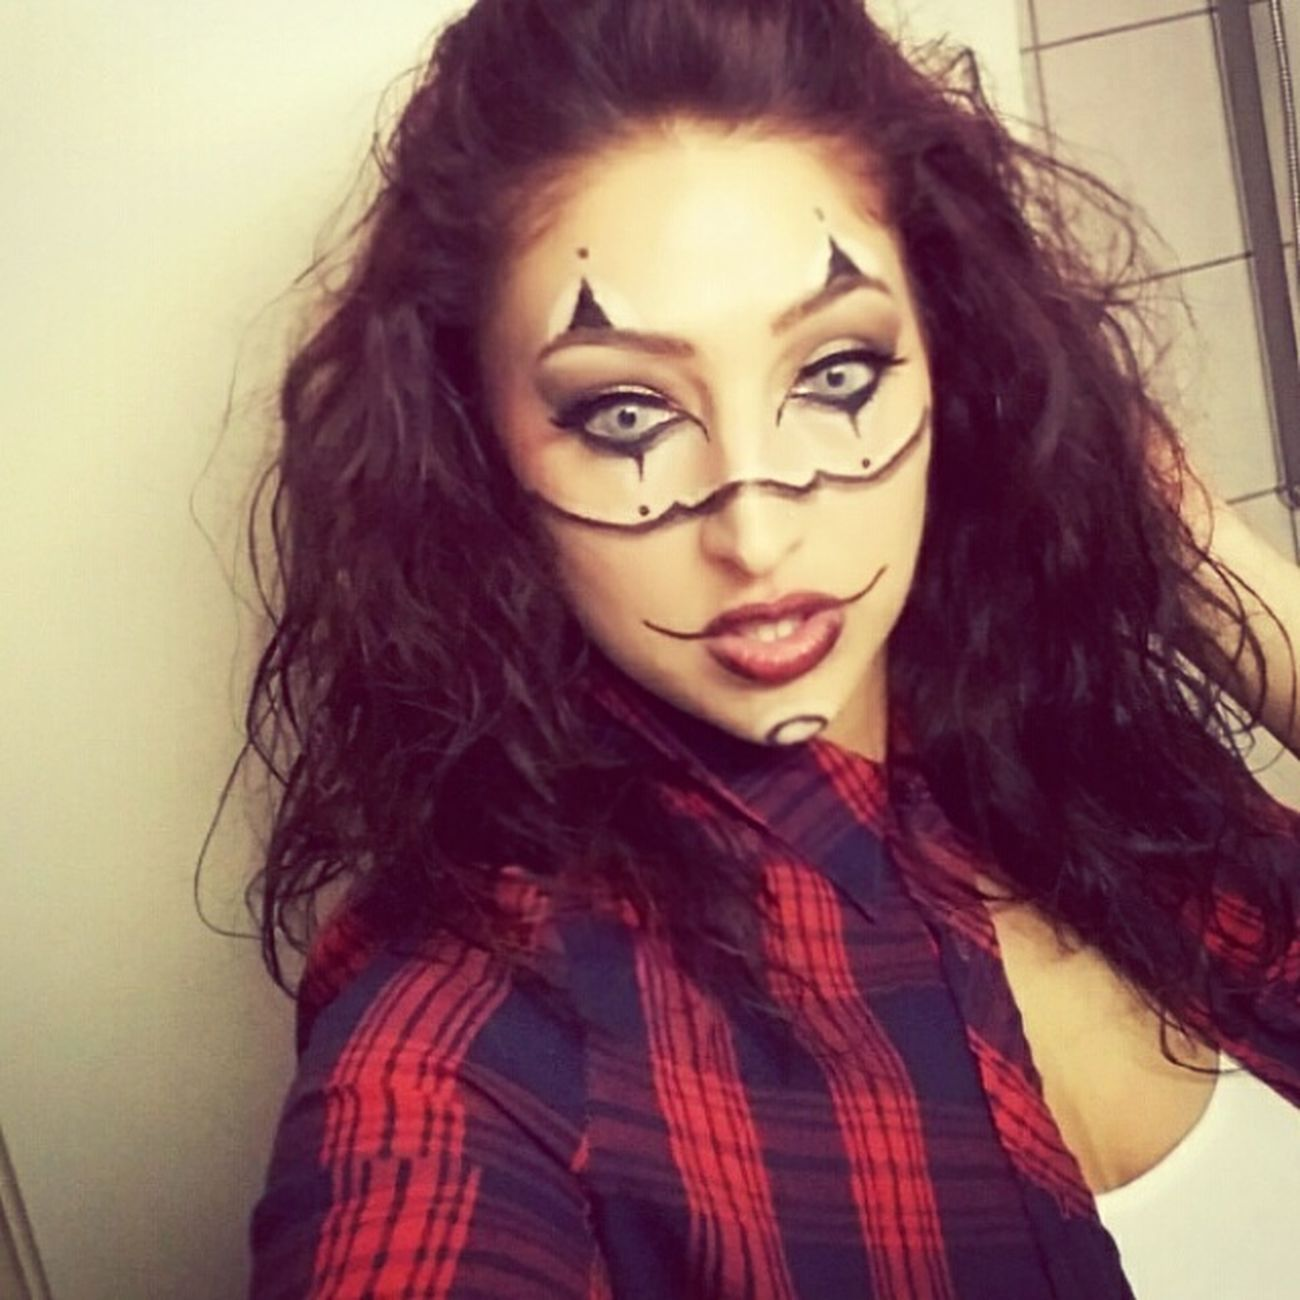 Halloween Horrors Halloween Halloweenparty Halloweennight Halloween Makeup Faces Of EyeEm Hello World Italiangirl Faces Scary